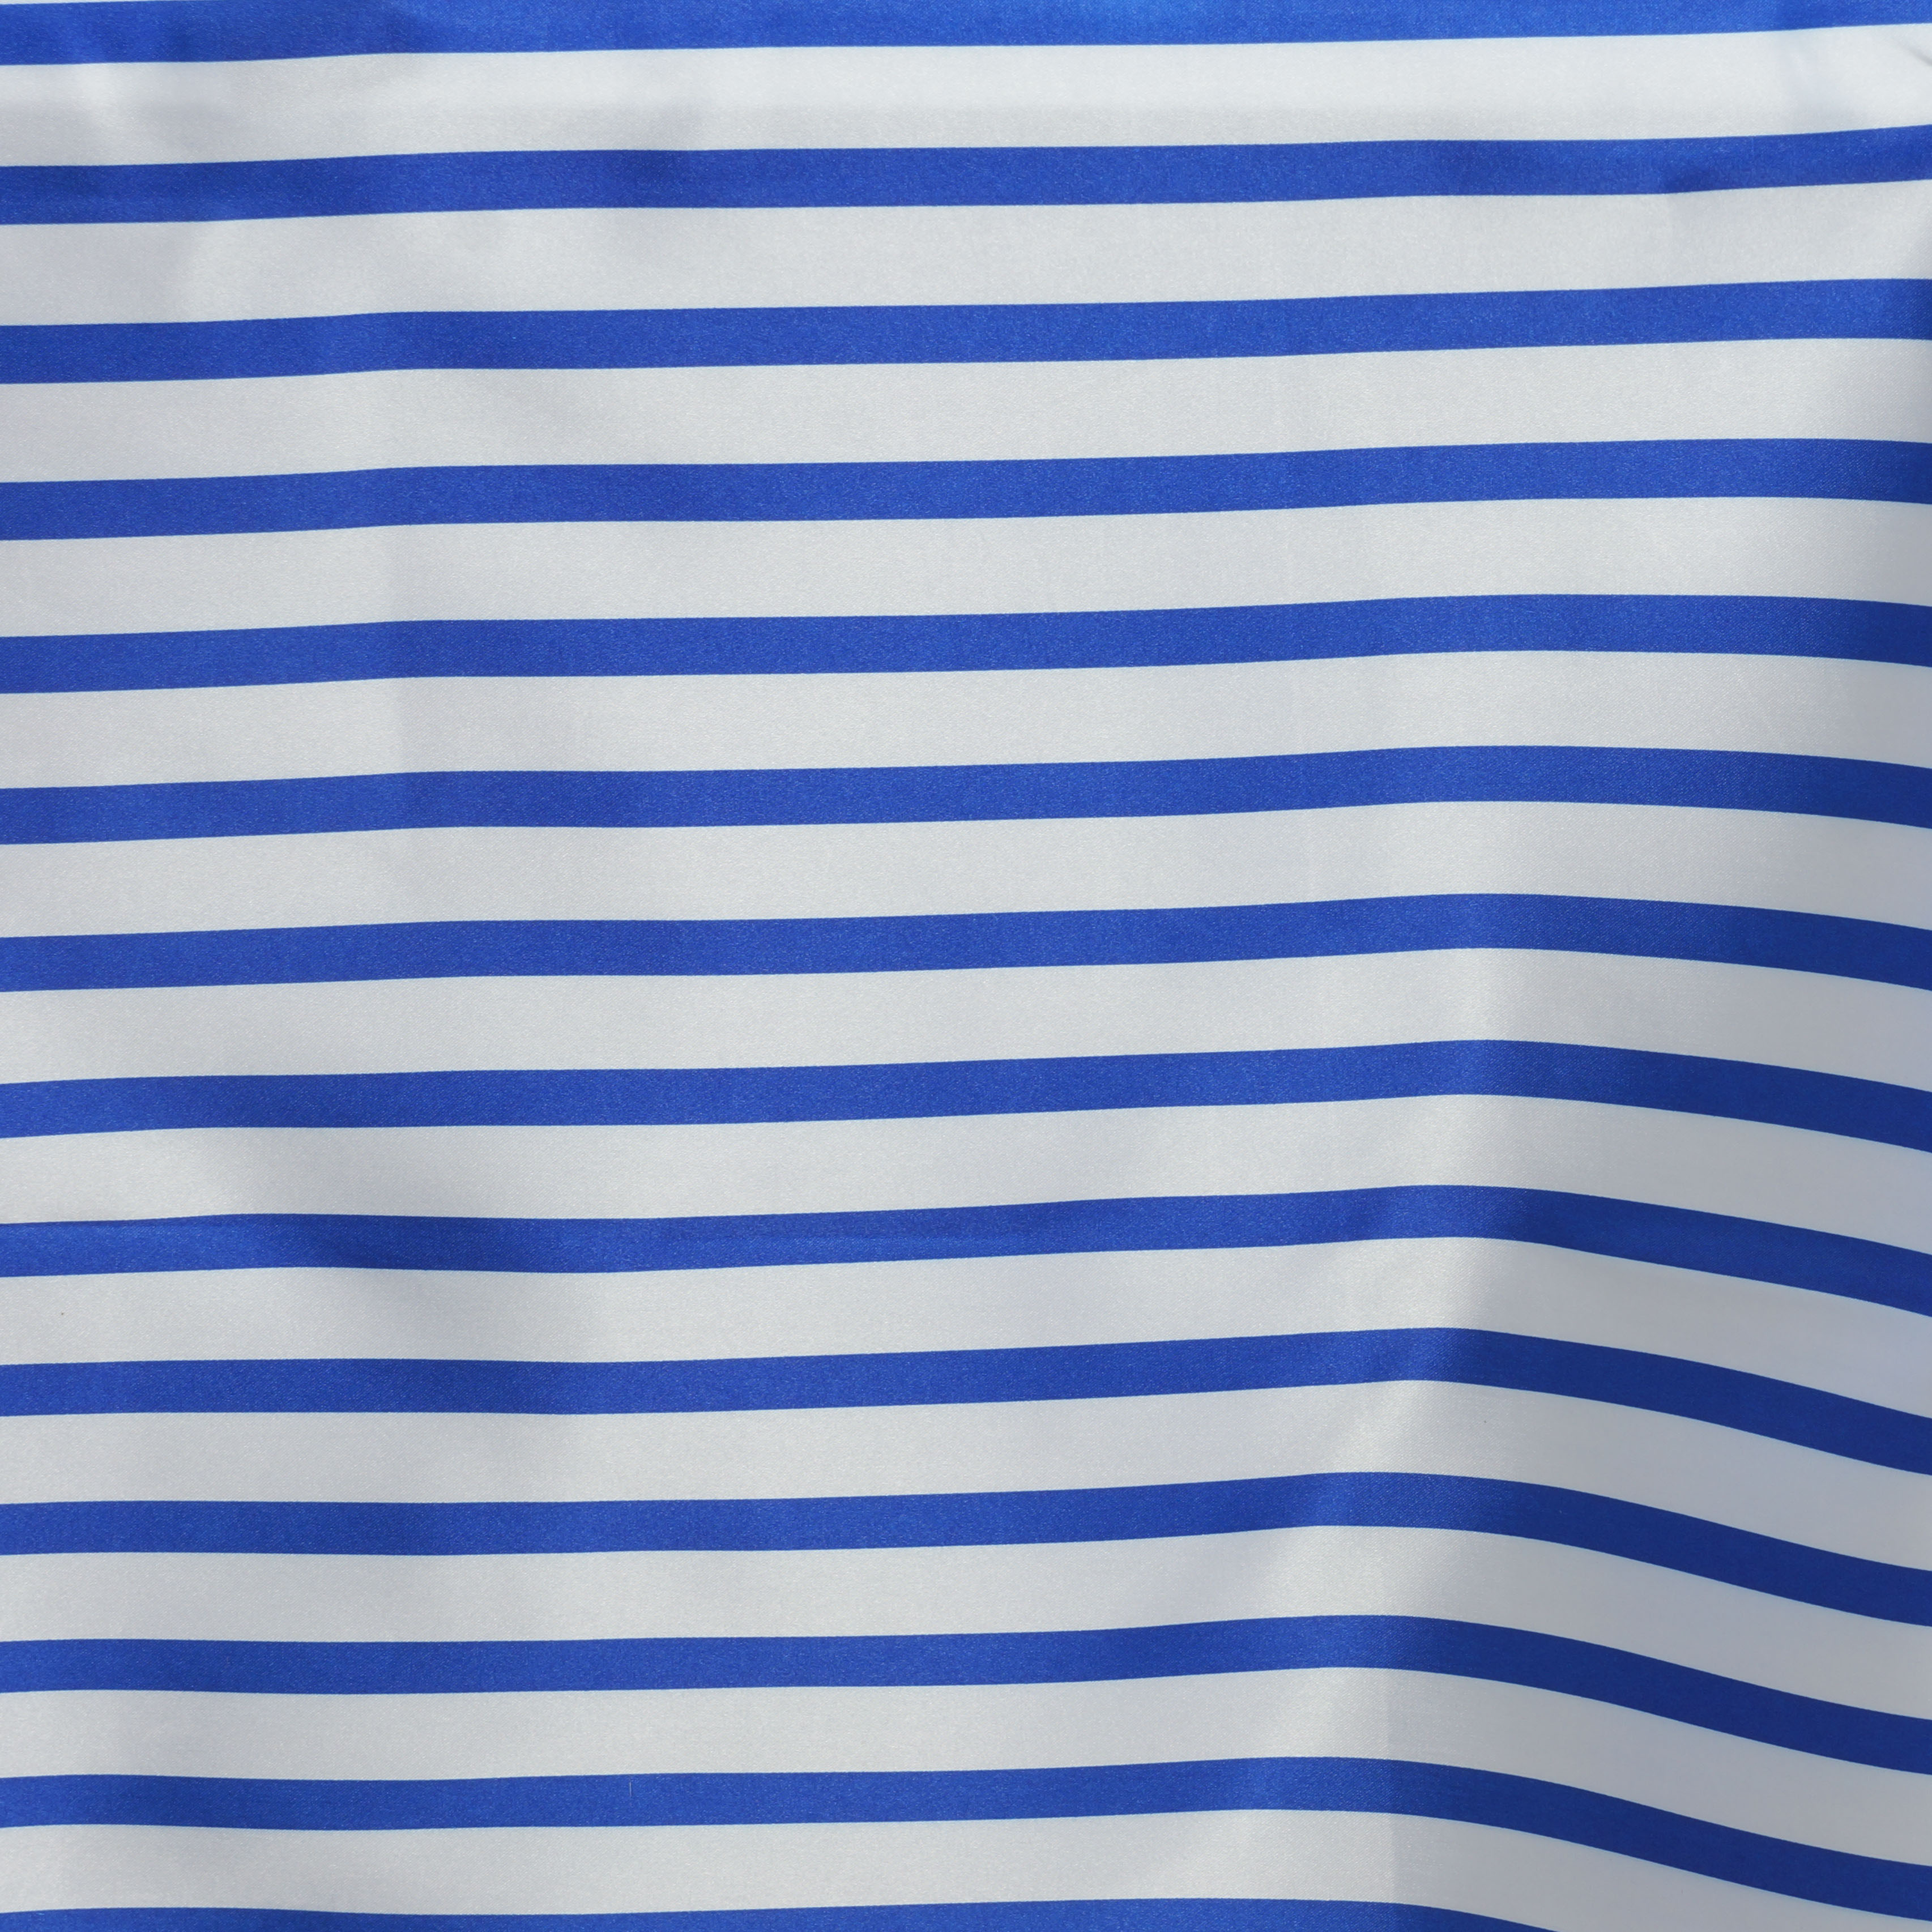 RECTANGULA-R-Striped-Satin-Tablecloth-Catering-Dinner-Wedding-Party-Linens-SALE thumbnail 9